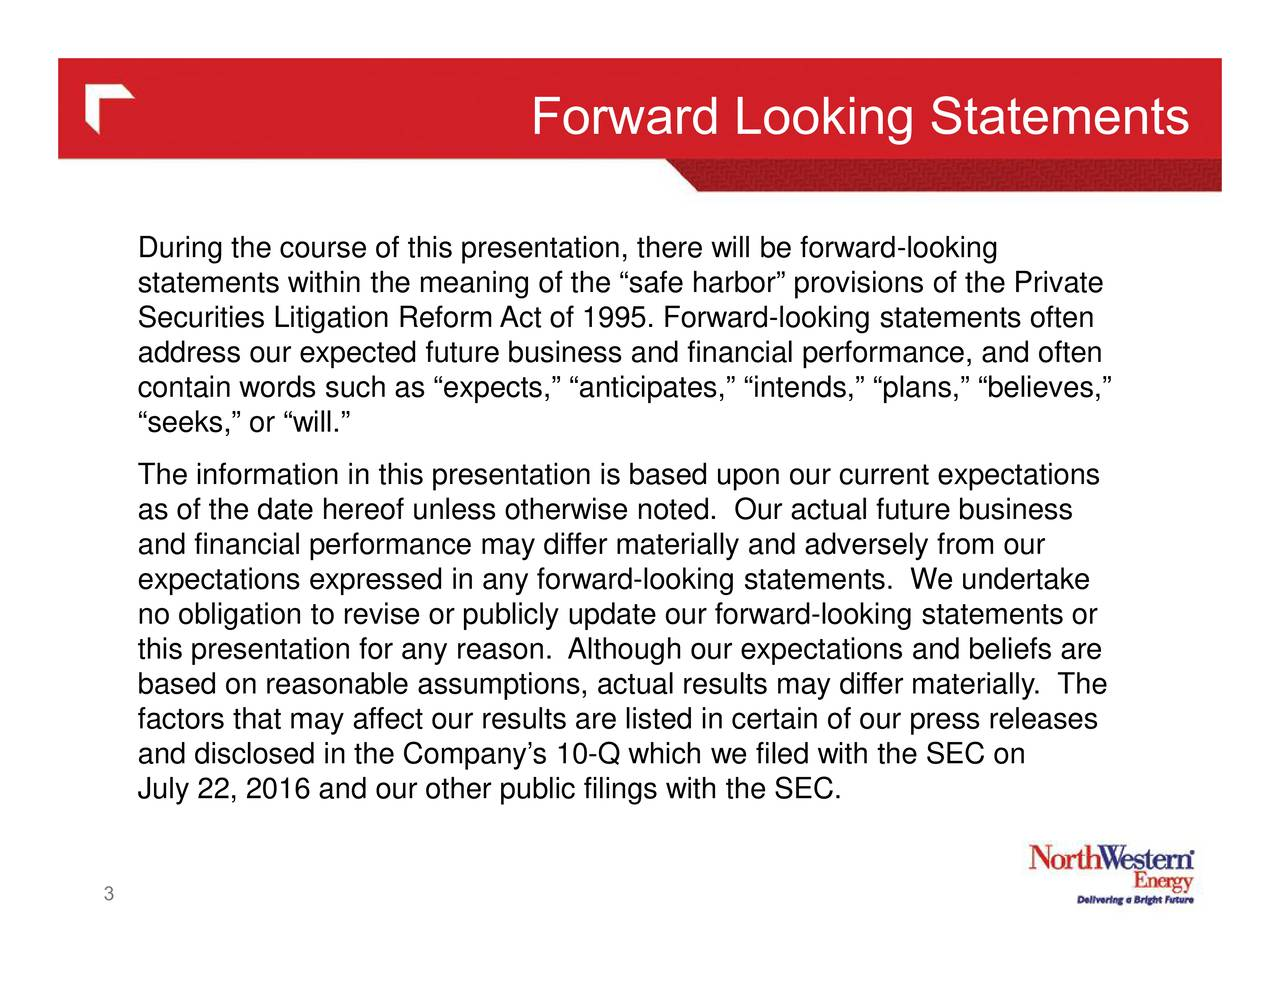 During the course of this presentation, there will be forward-looking statements within the meaning of the safe harbor provisions of the Private Securities Litigation Reform Act of 1995. Forward-looking statements often address our expected future business and financial performance, and often contain words such as expects, anticipates, intends, plans, believes, seeks, or will. The information in this presentation is based upon our current expectations as of the date hereof unless otherwise noted. Our actual future business and financial performance may differ materially and adversely from our expectations expressed in any forward-looking statements. We undertake no obligation to revise or publicly update our forward-looking statements or this presentation for any reason. Although our expectations and beliefs are based on reasonable assumptions, actual results may differ materially. The factors that may affect our results are listed in certain of our press releases and disclosed in the Companys 10-Q which we filed with the SEC on July 22, 2016 and our other public filings with the SEC. 3